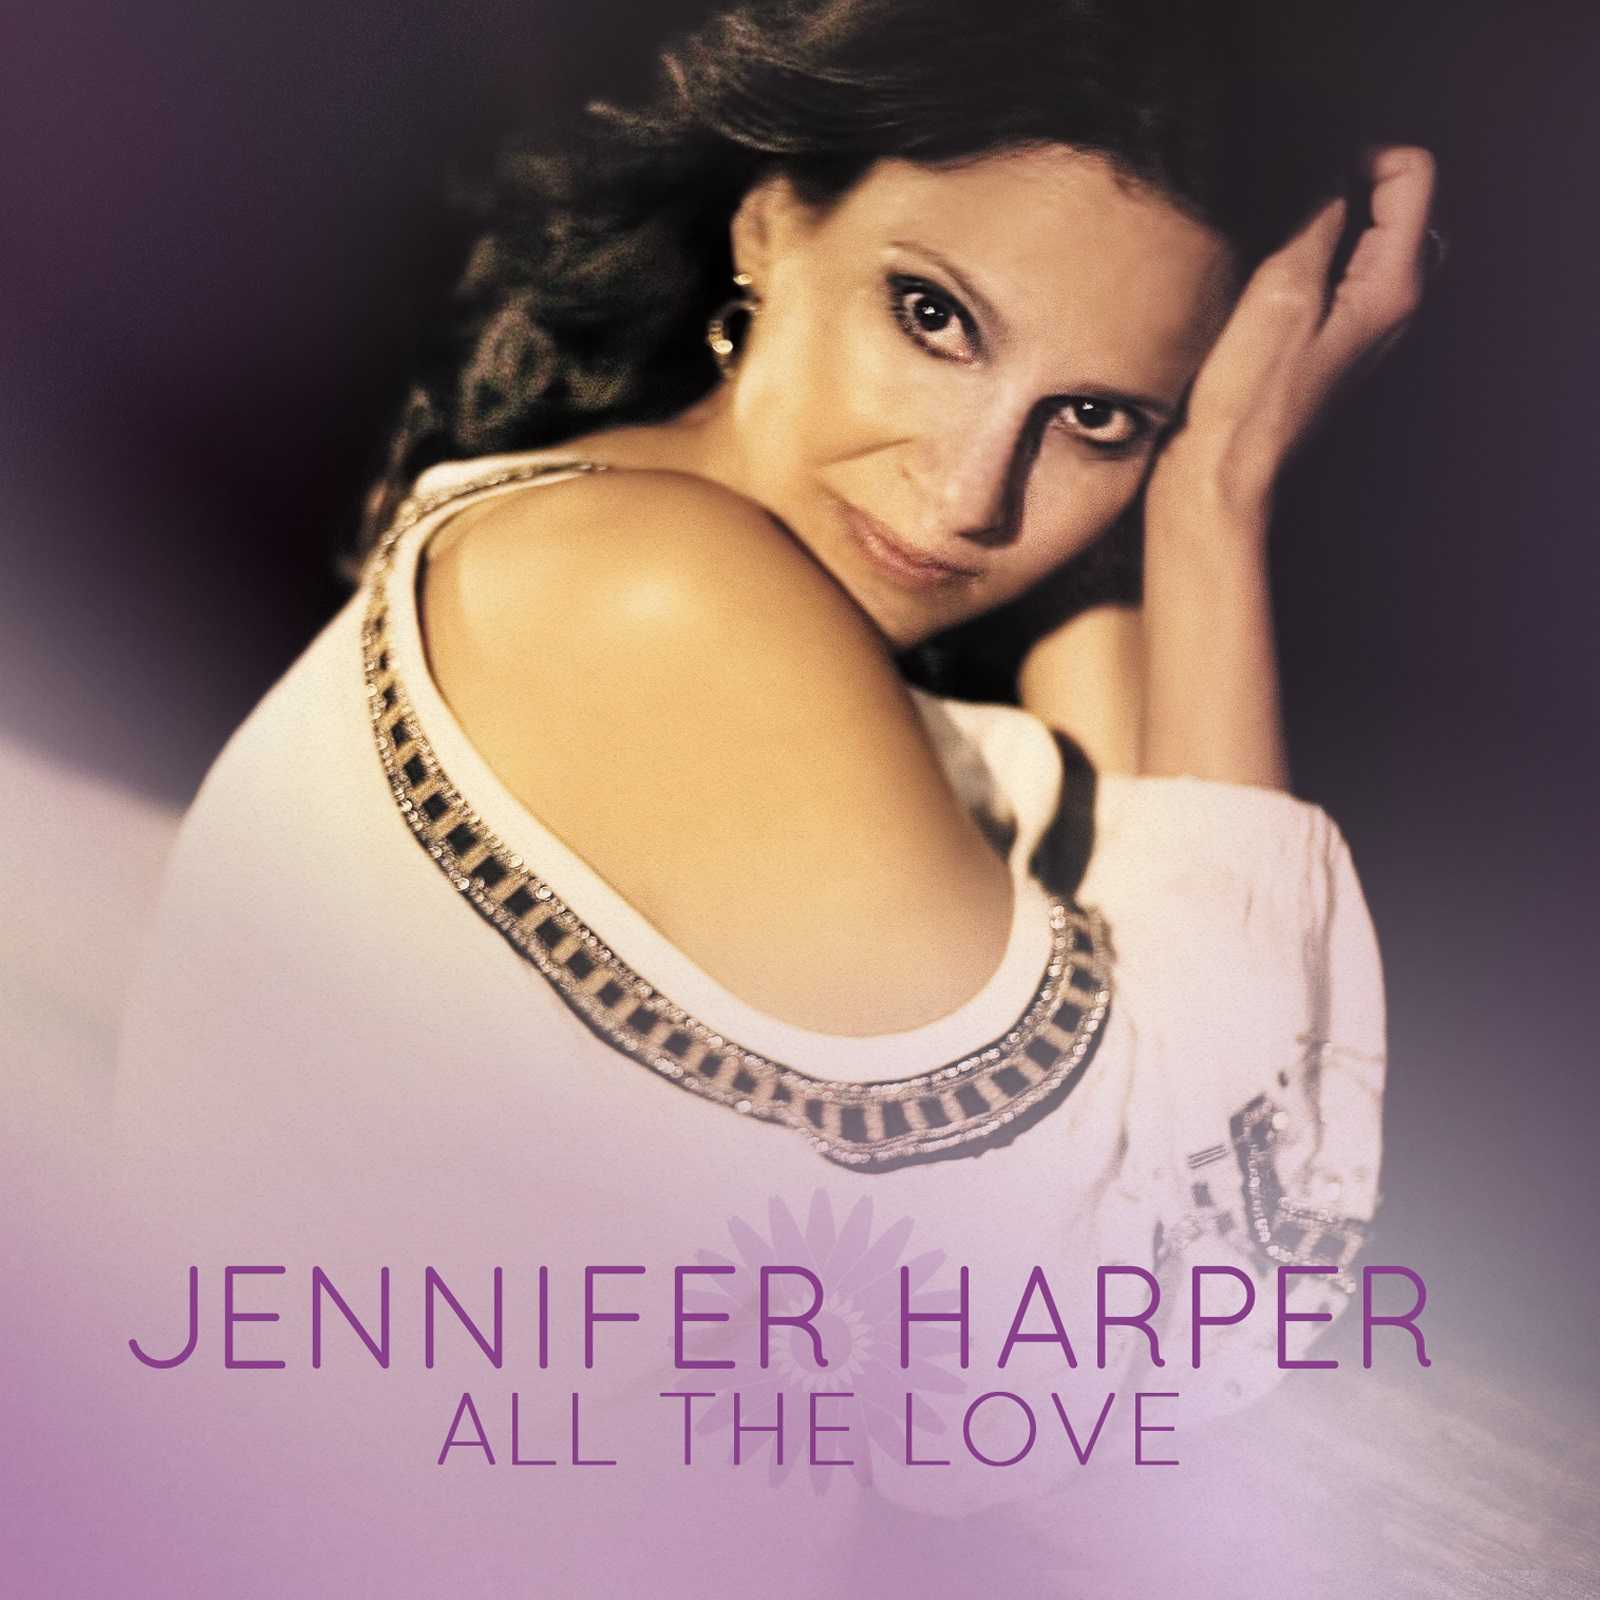 Exclusive Stream: Jennifer Harper's New EP 'All The Love' | Jennifer Harper